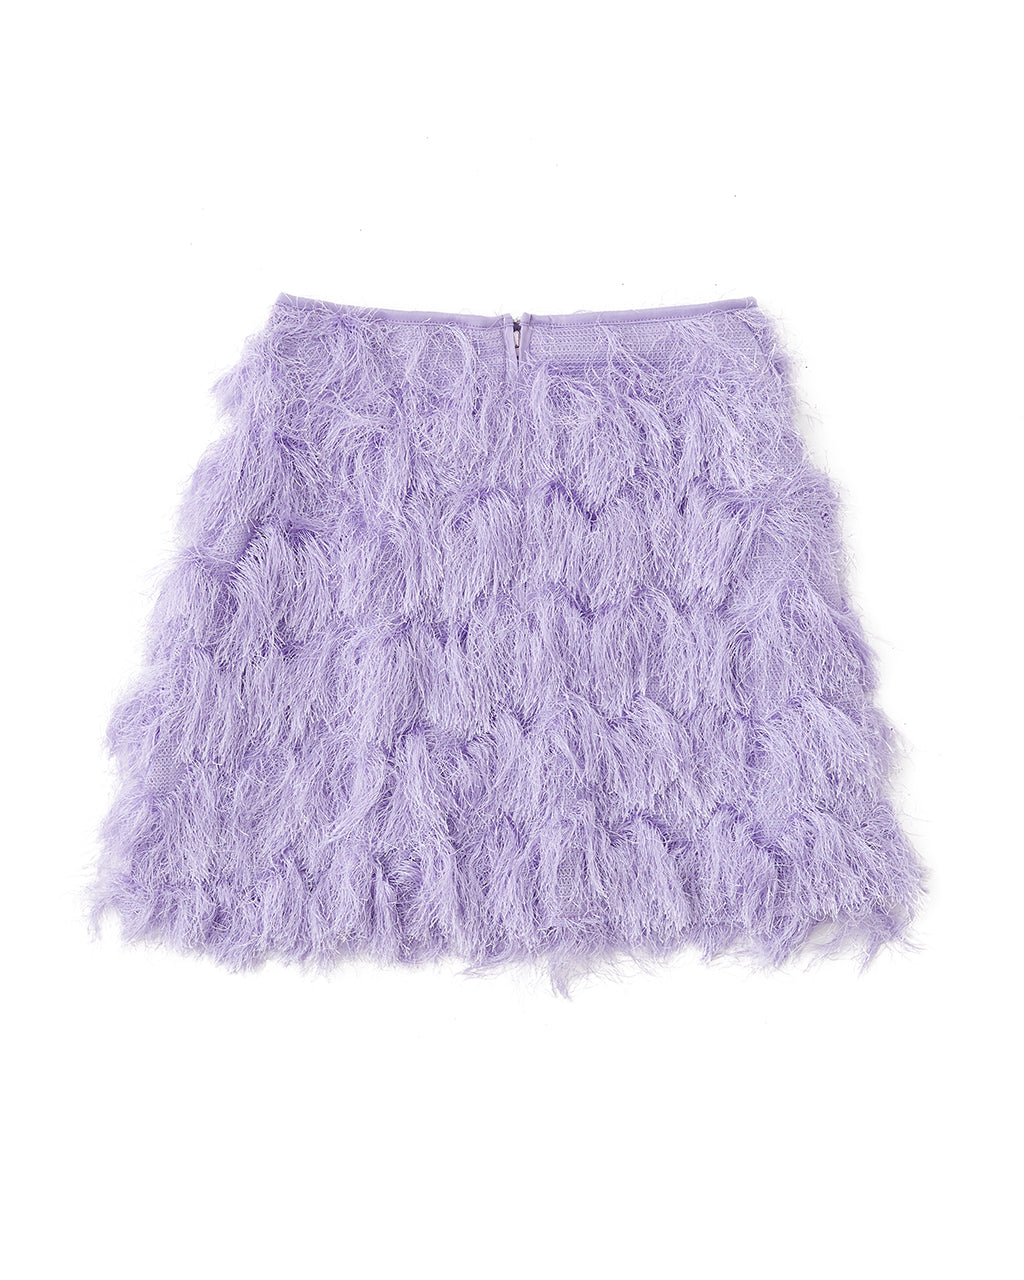 wyne skirt - faux fur